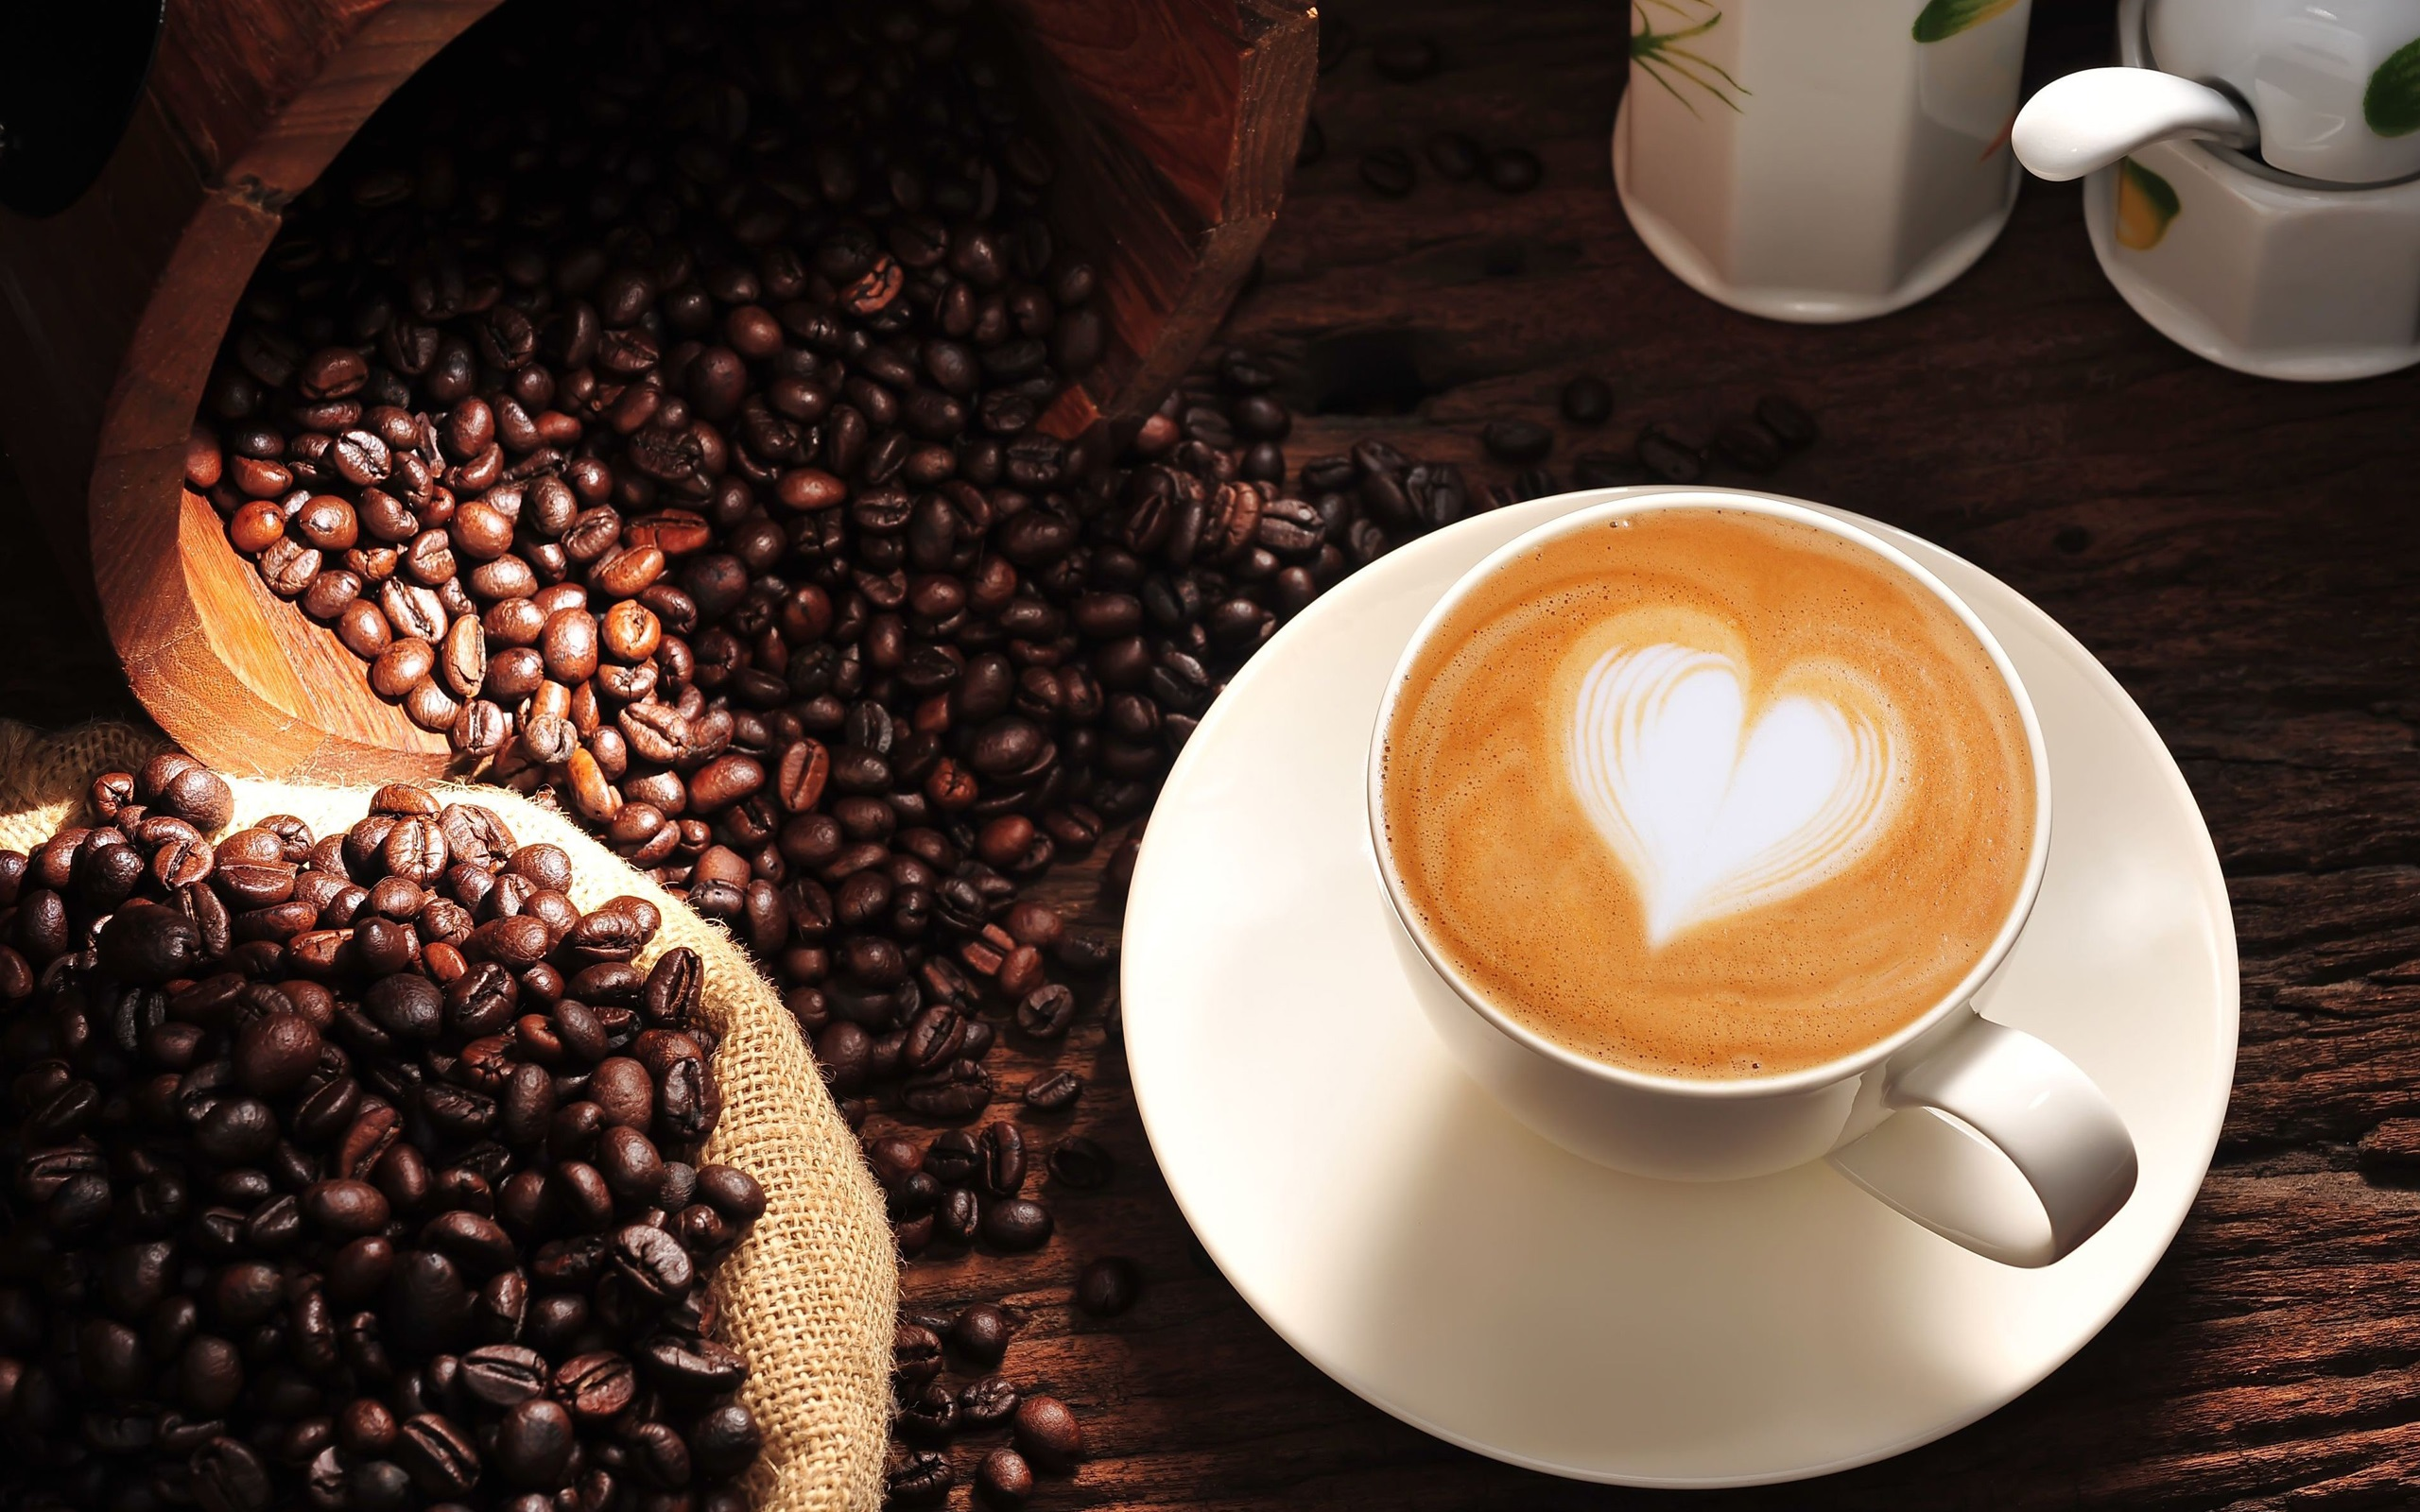 Coffee Wallpaper cappuccino heart love cup coffee beans HD 2560x1600